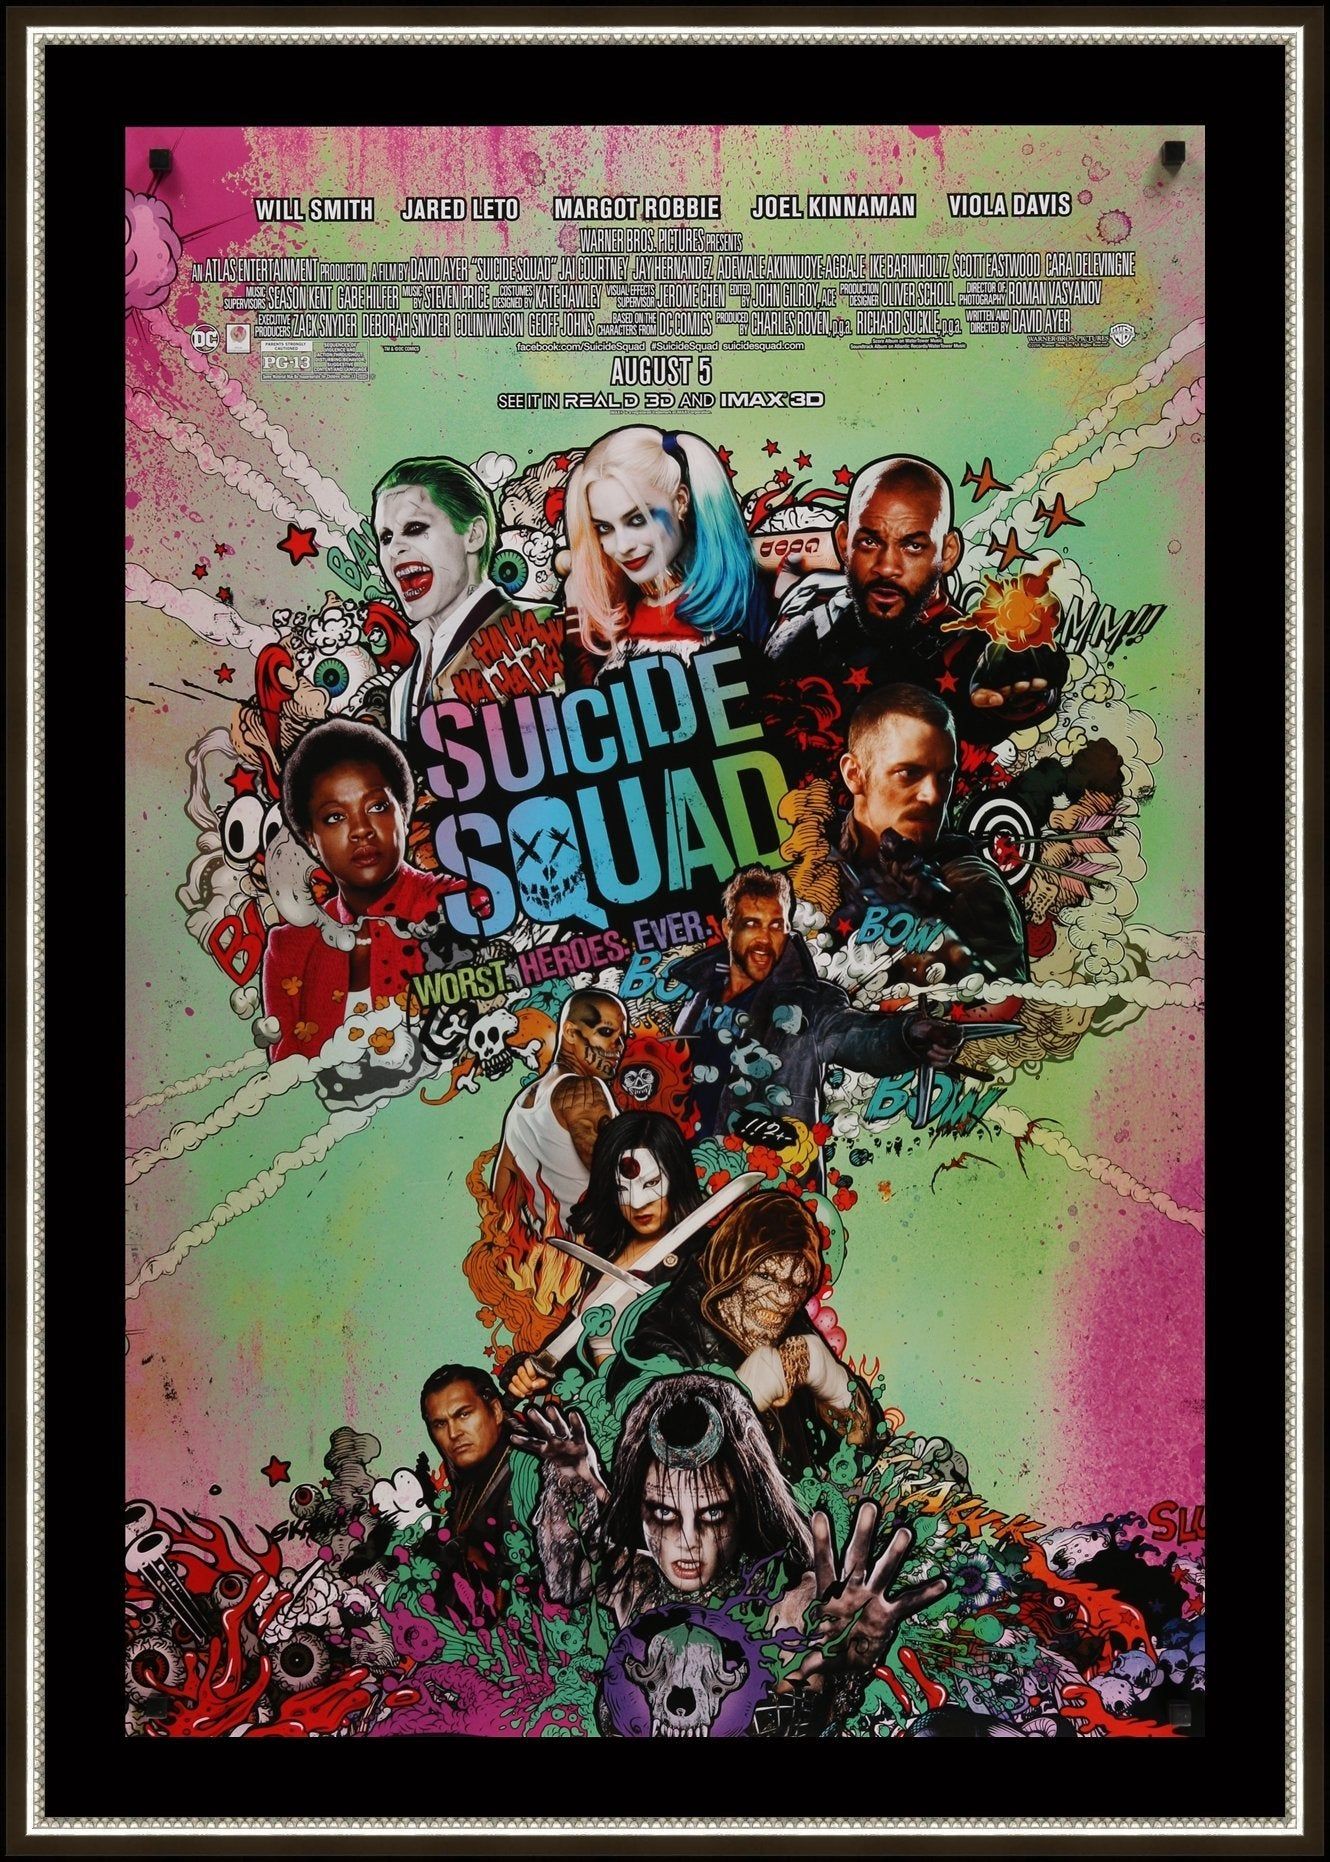 An original vintage movie poster for Suicide Squad